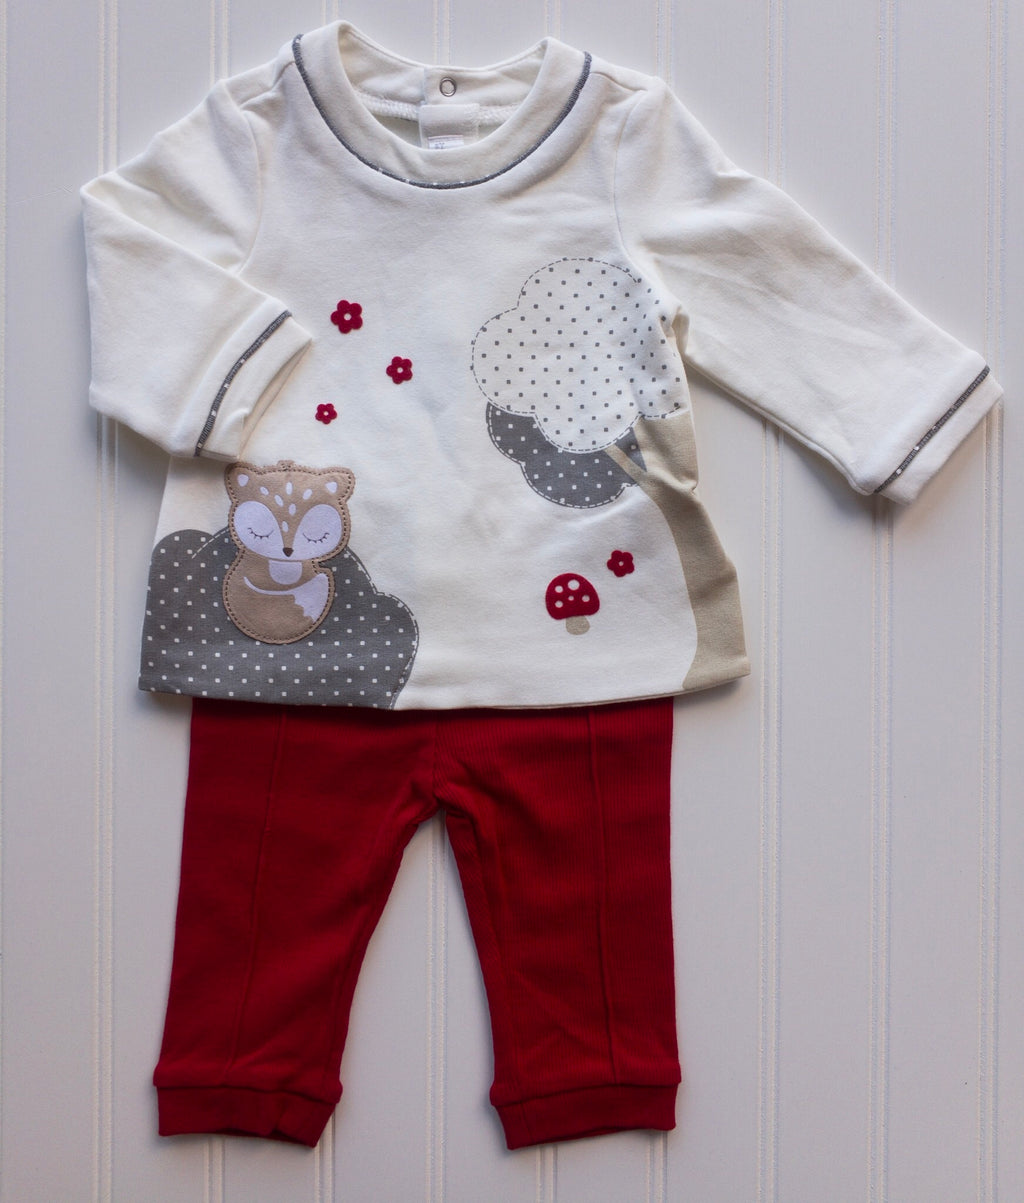 Woodland Fox Top and Red Leggings